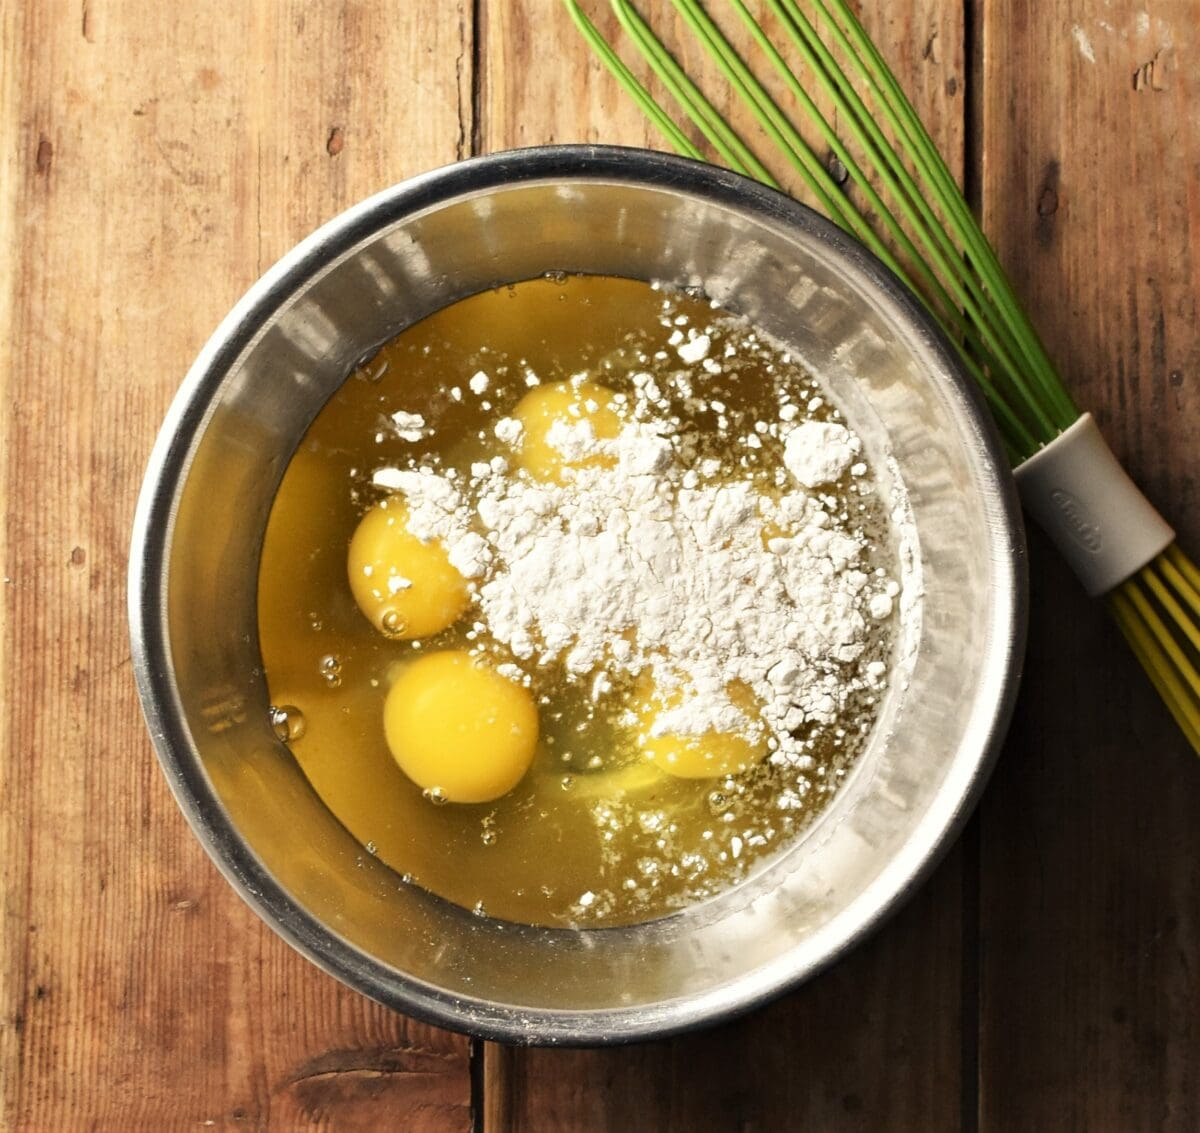 Raw eggs and a bit of flour in metal bowl with green whisk in top right corner.